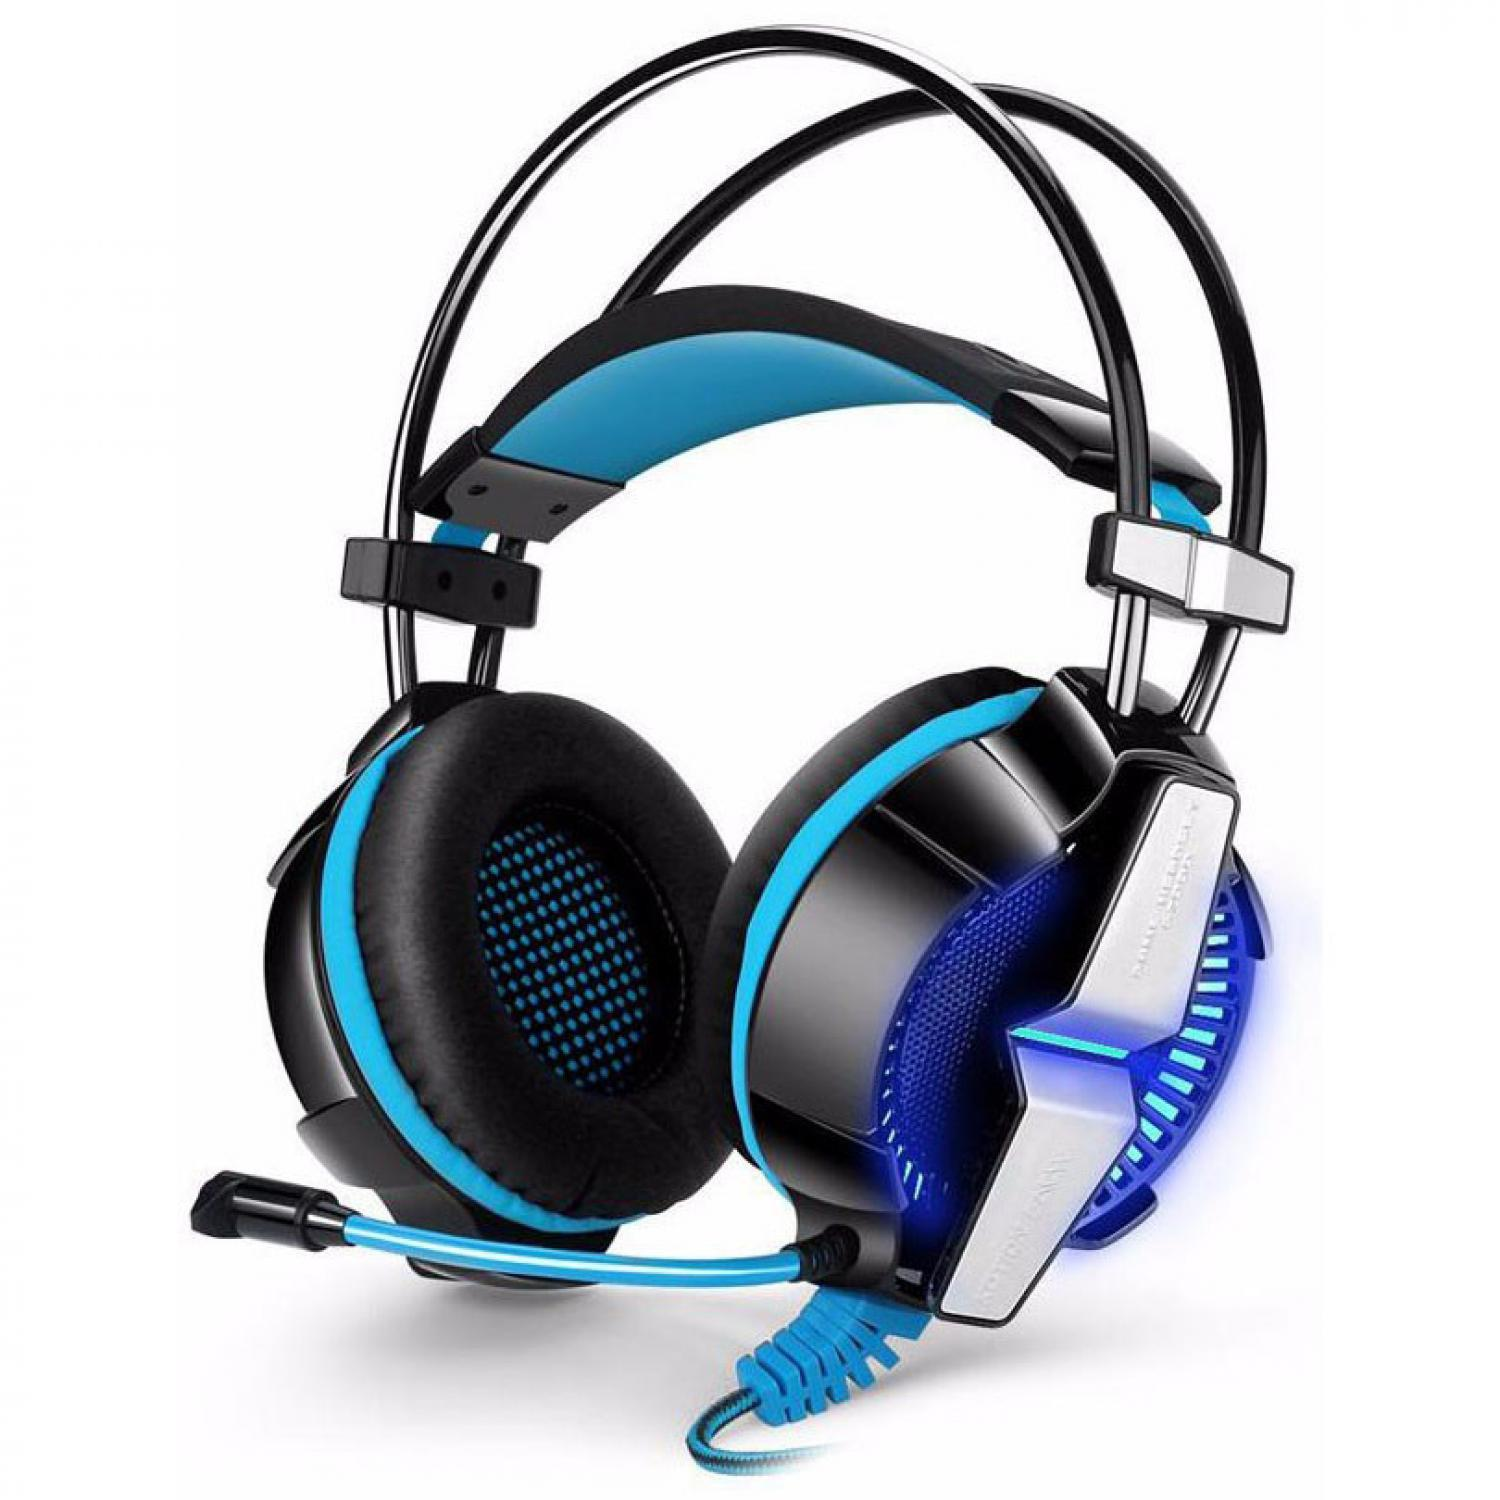 Headset Gaming Category Page Rexus F15s Original Kotion Each G7000 Pro 71 Anti Noise With Led